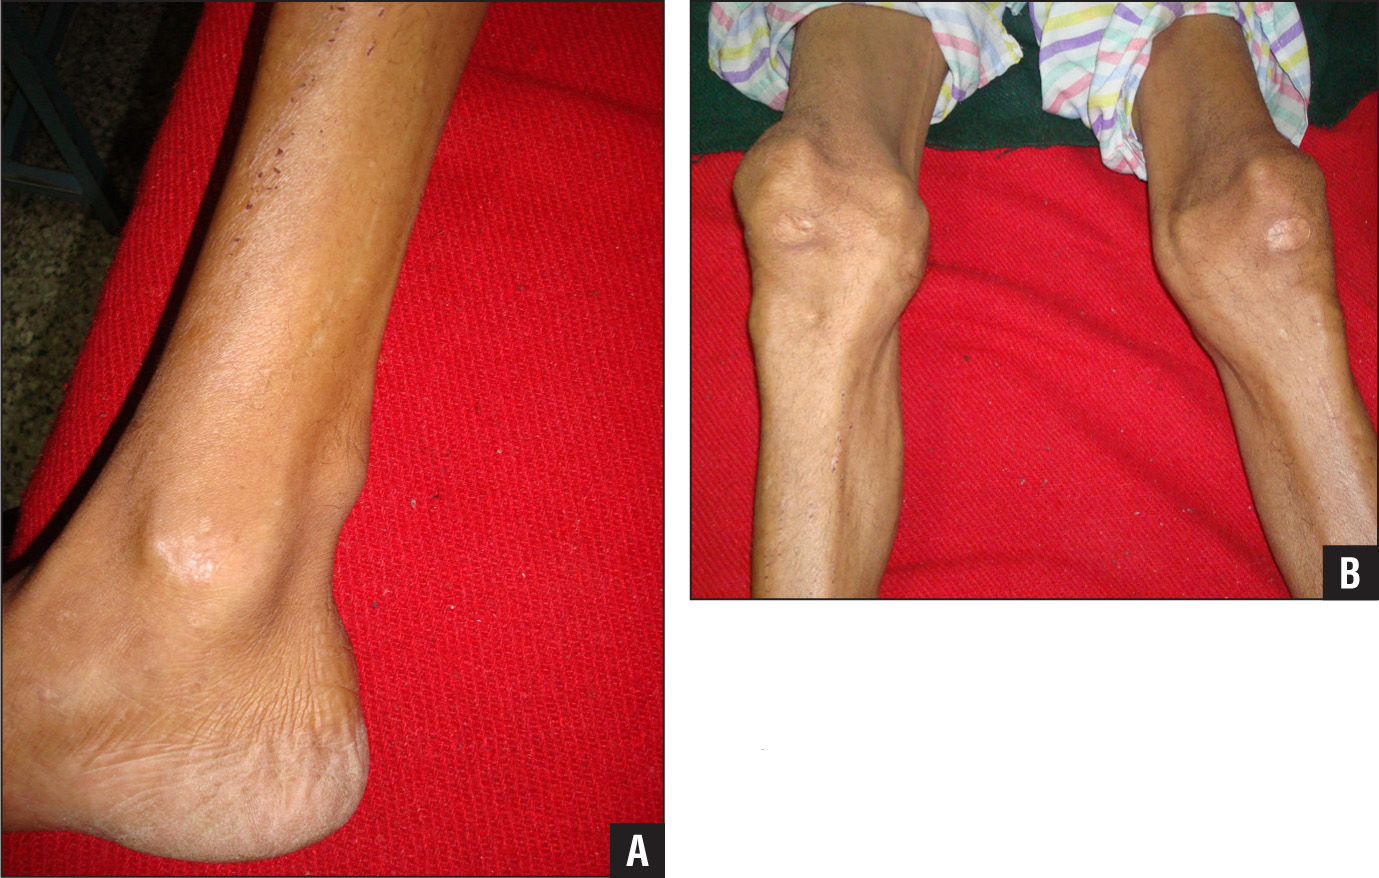 Preoperative anterior photograph showing subcutaneous nodules over the Achilles tendon (A). Preoperative lateral photograph showing subcutaneous nodules over the knees (B).